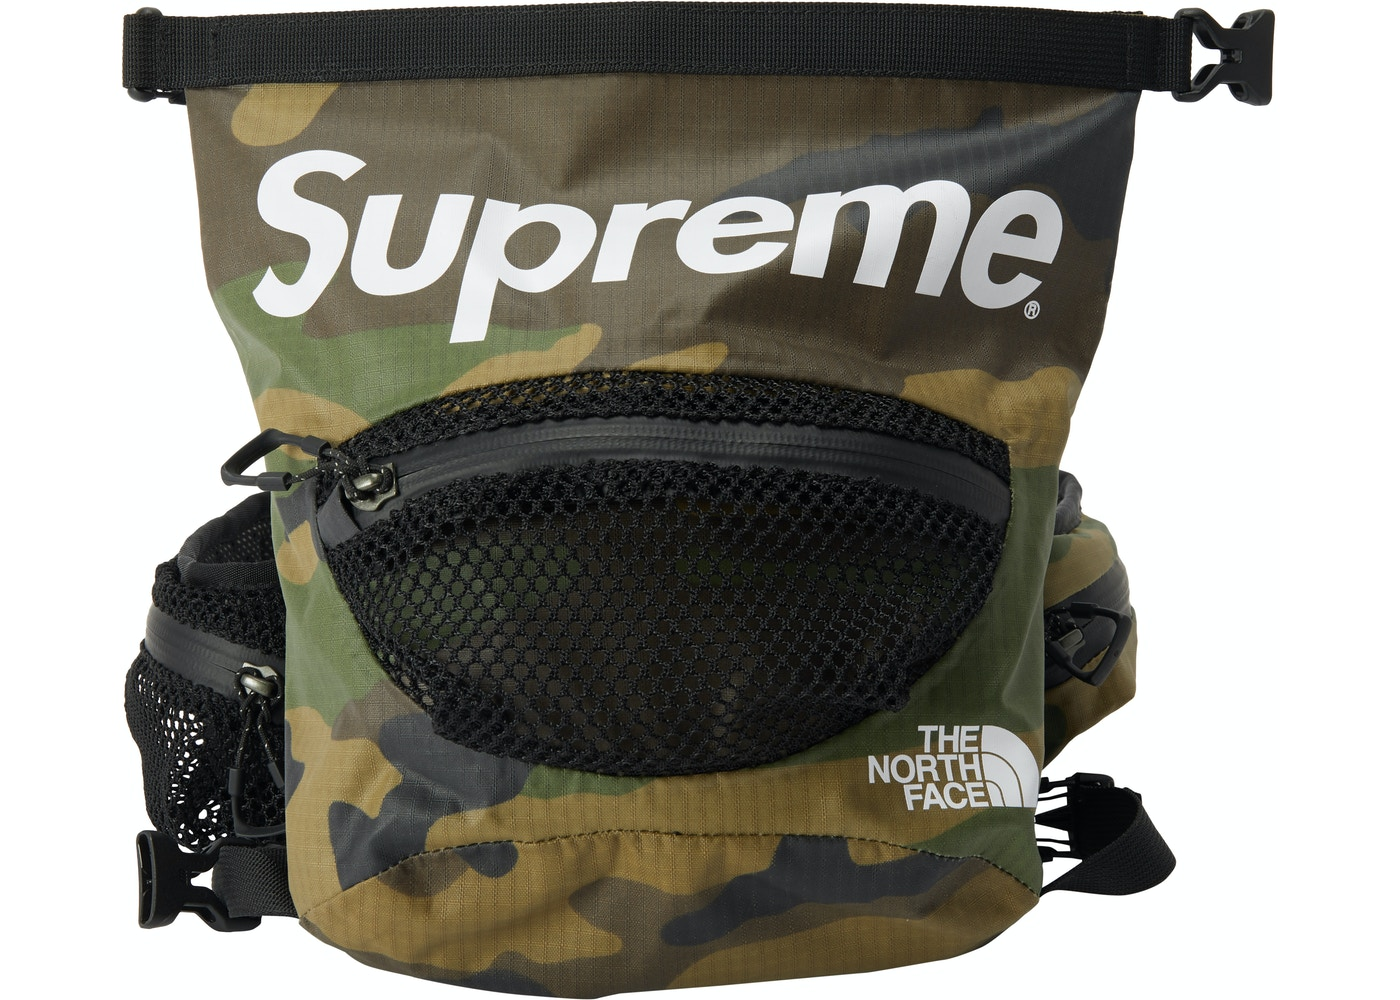 Or Ask View All Bids Supreme The North Face Waterproof Waist Bag Woodland Camo